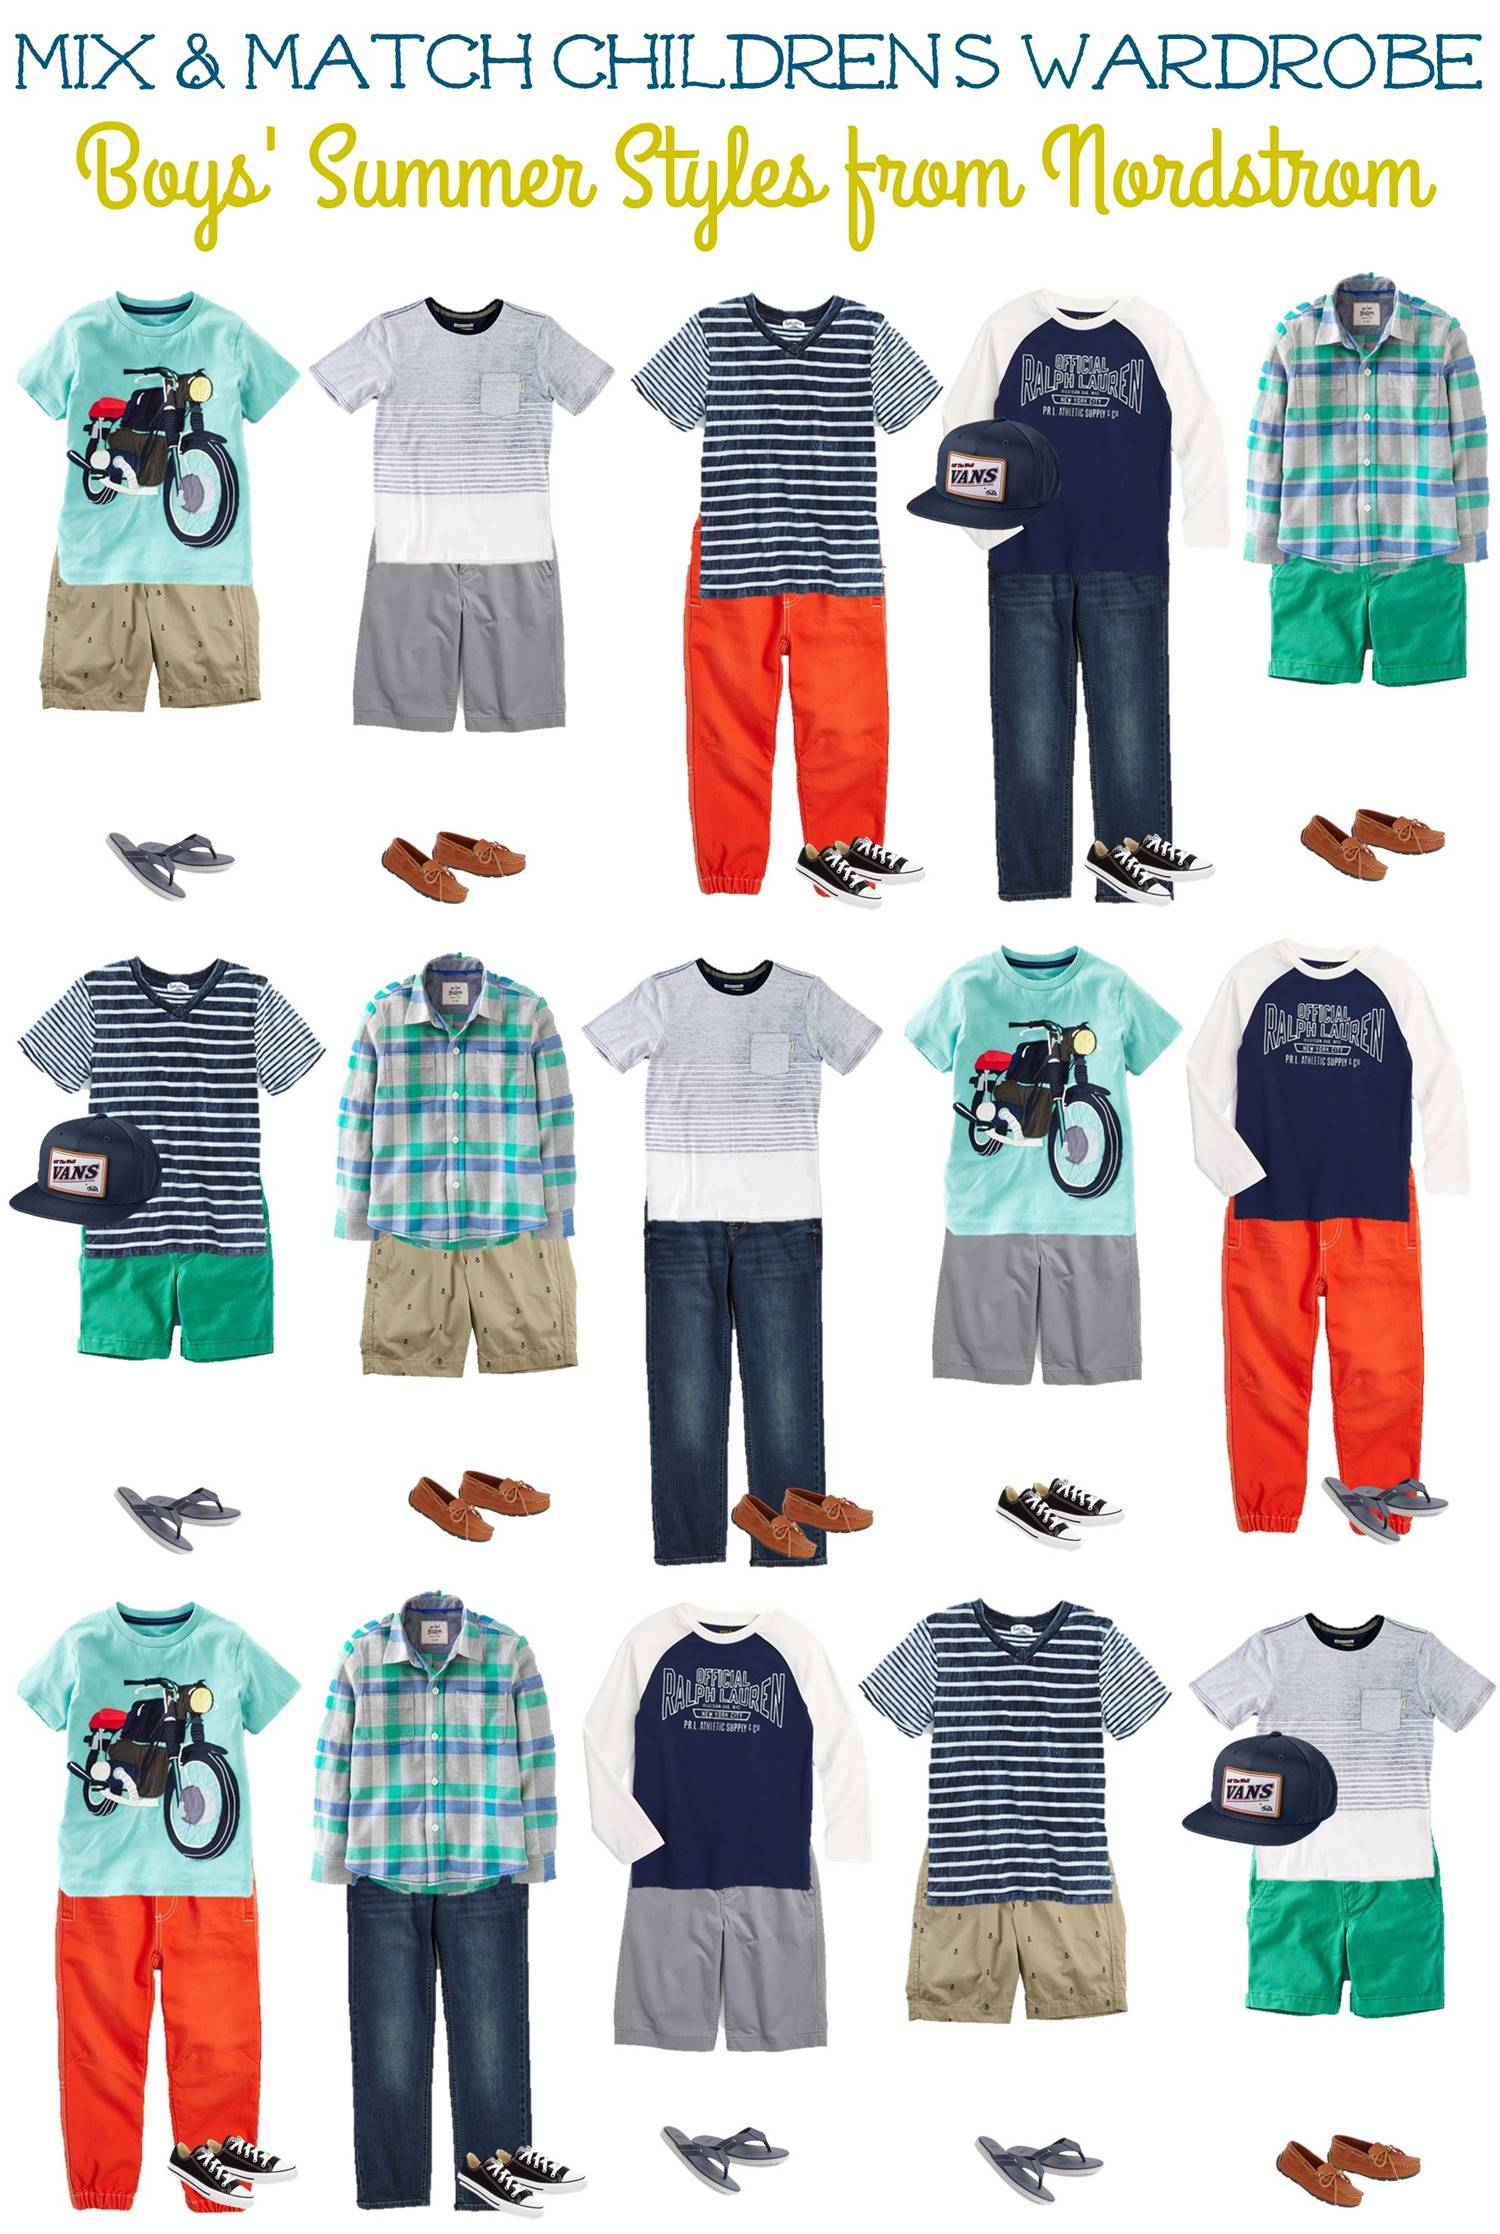 3.23 Mix and Match Fashion - Boys Summer Styles from Nordstrom VERTICAL